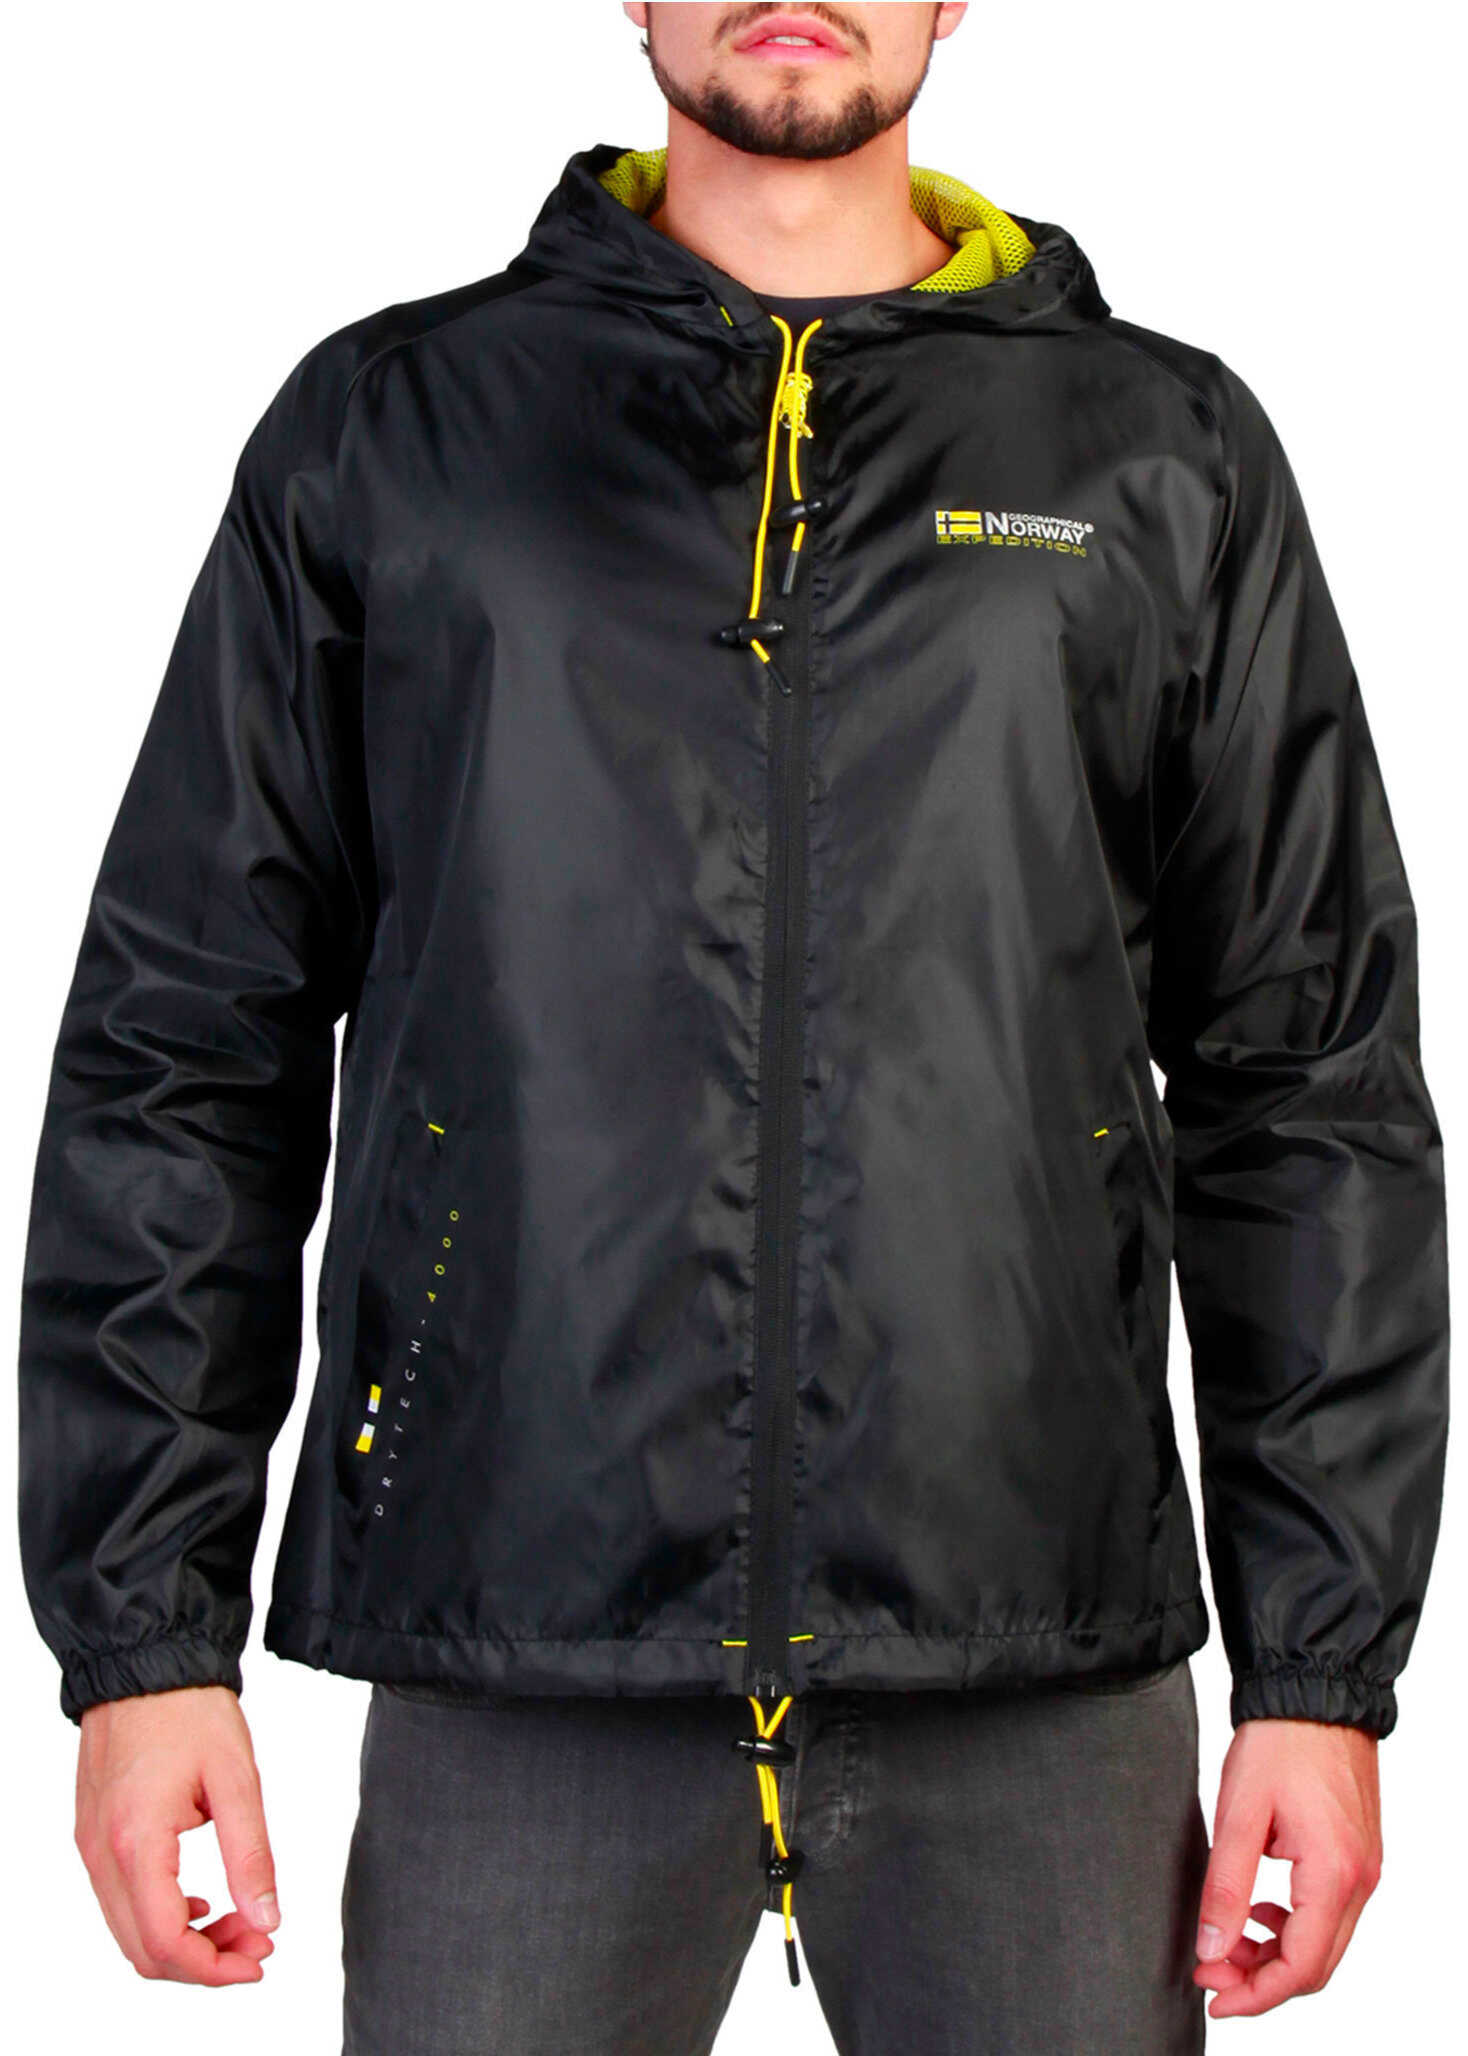 Geographical Norway Boat_Man Black